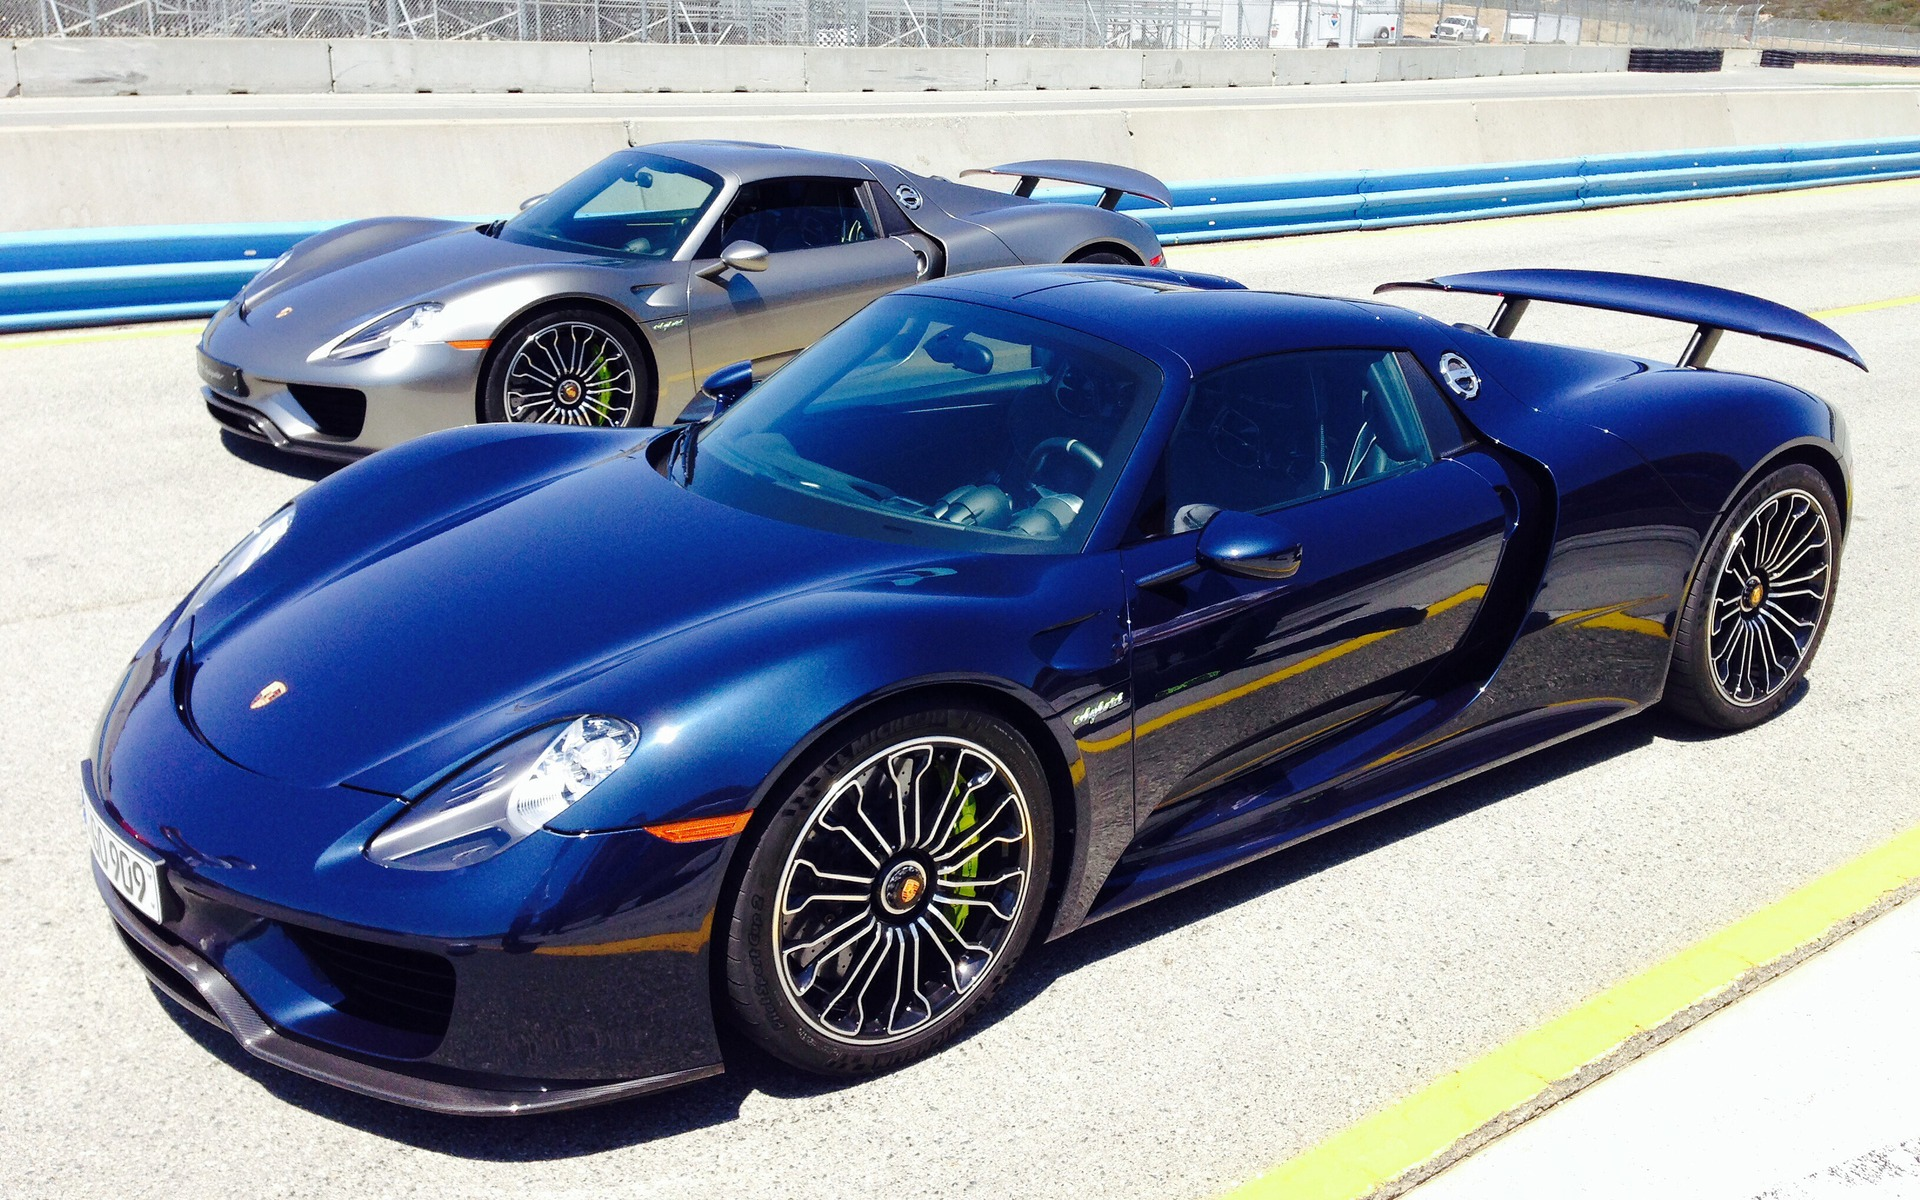 porsche 918 spyder news production run complete page 10 page 9 acurazine acura enthusiast community - Porsche 918 Spyder Blue Flame